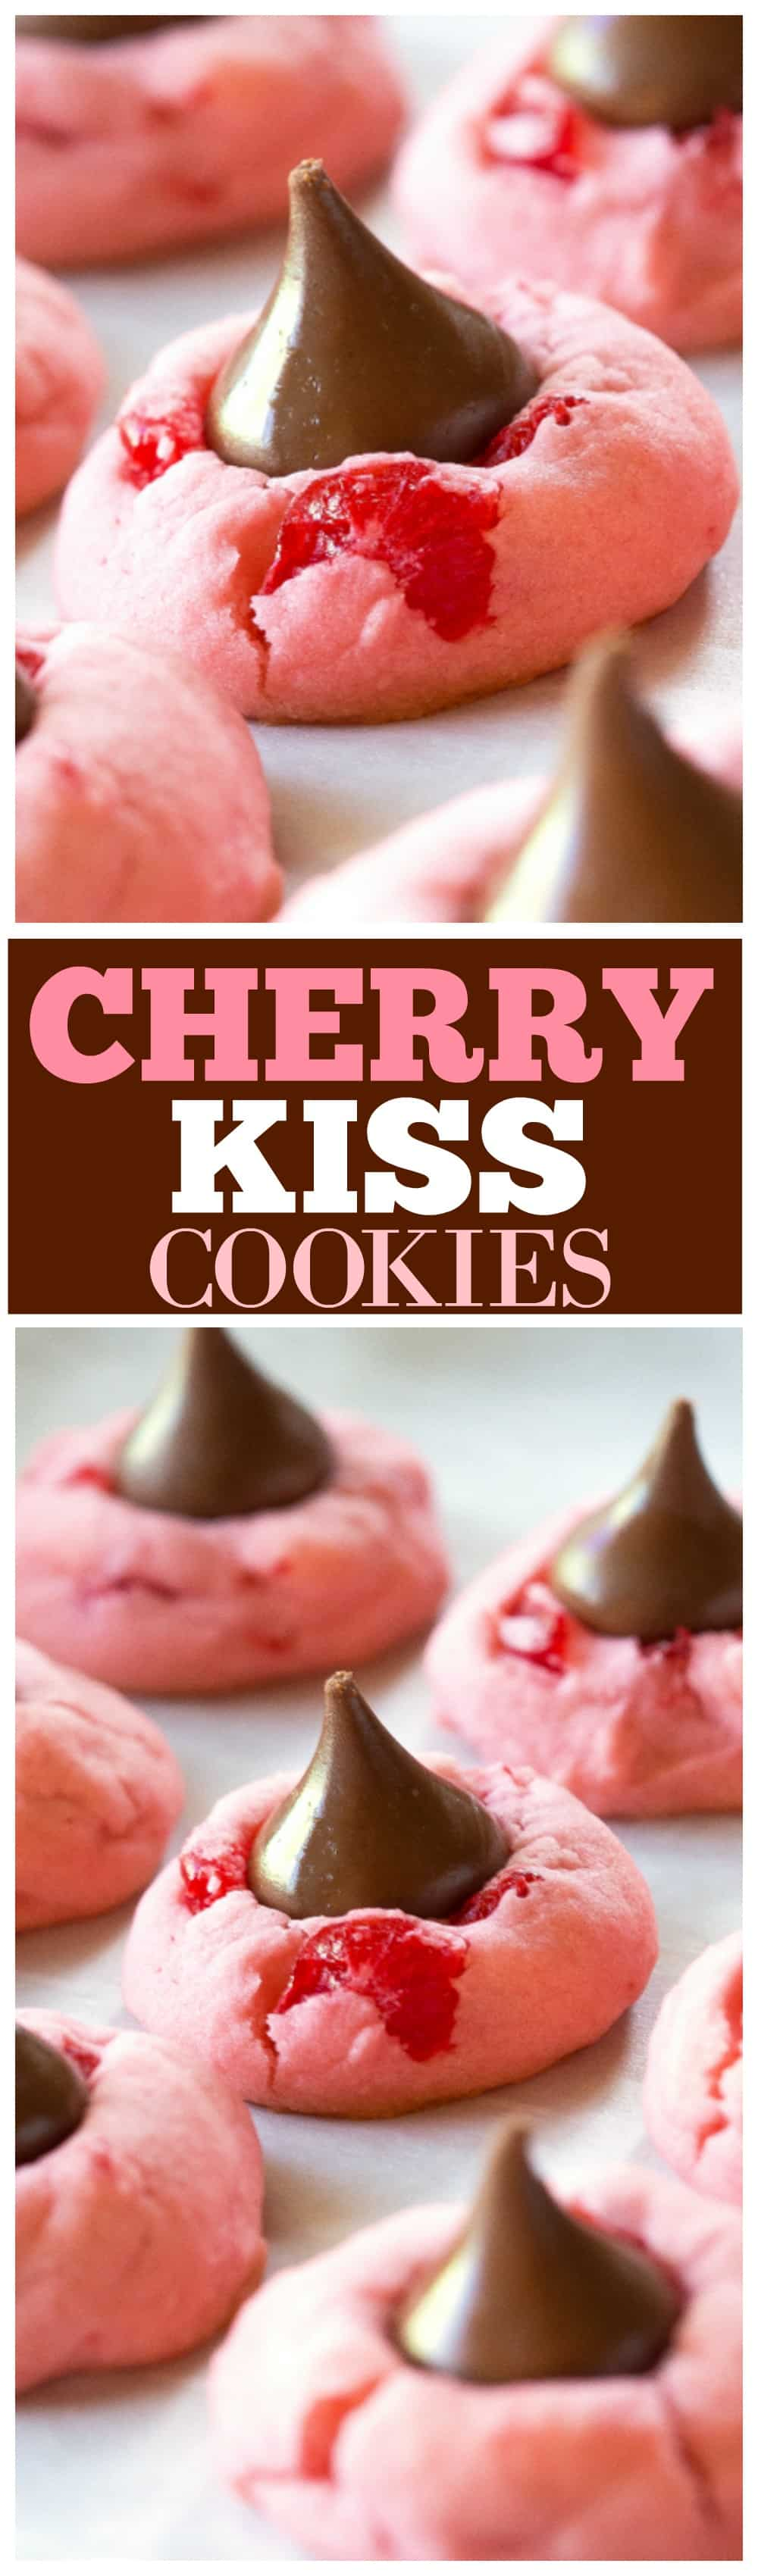 These Cherry Kiss Cookies are sweet cherry almond cookies with a chocolate Hershey kiss in the middle. Great for Christmas cookie plates. #christmas #cookie #recipe #cherry #kiss #dessert